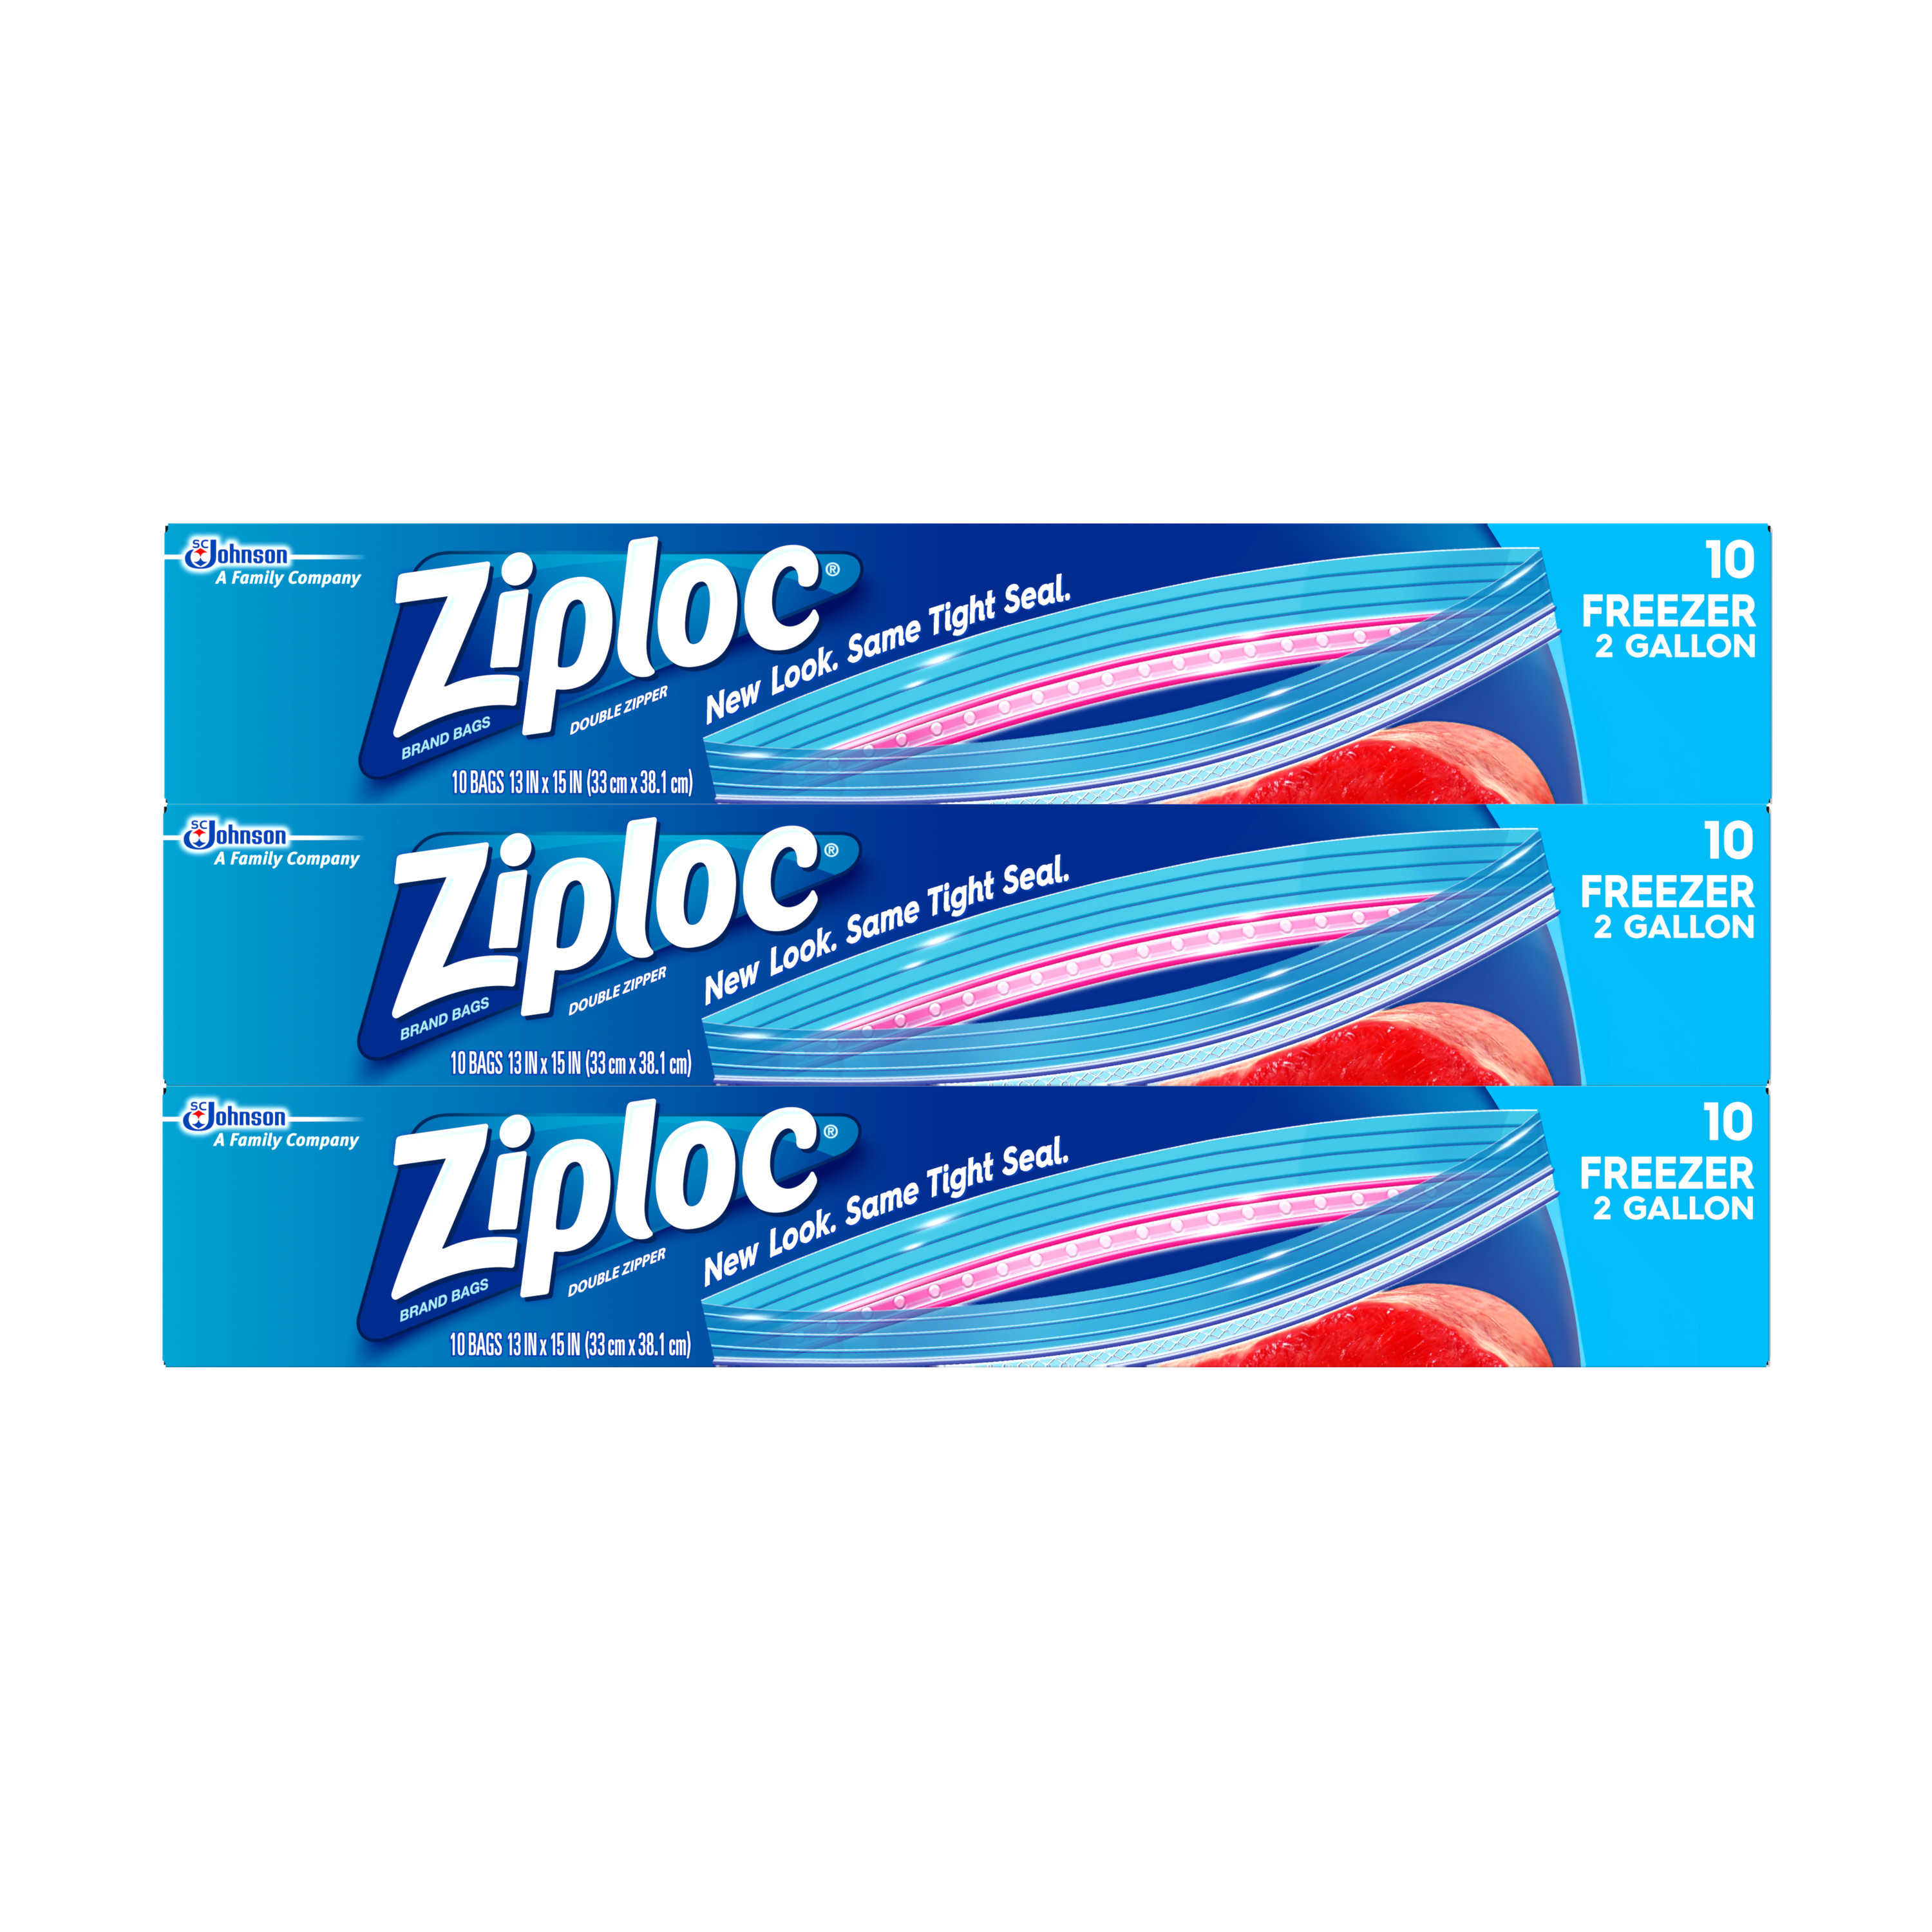 Ziploc Freezer Bags, Two Gallon, 3 Pack, 10 count